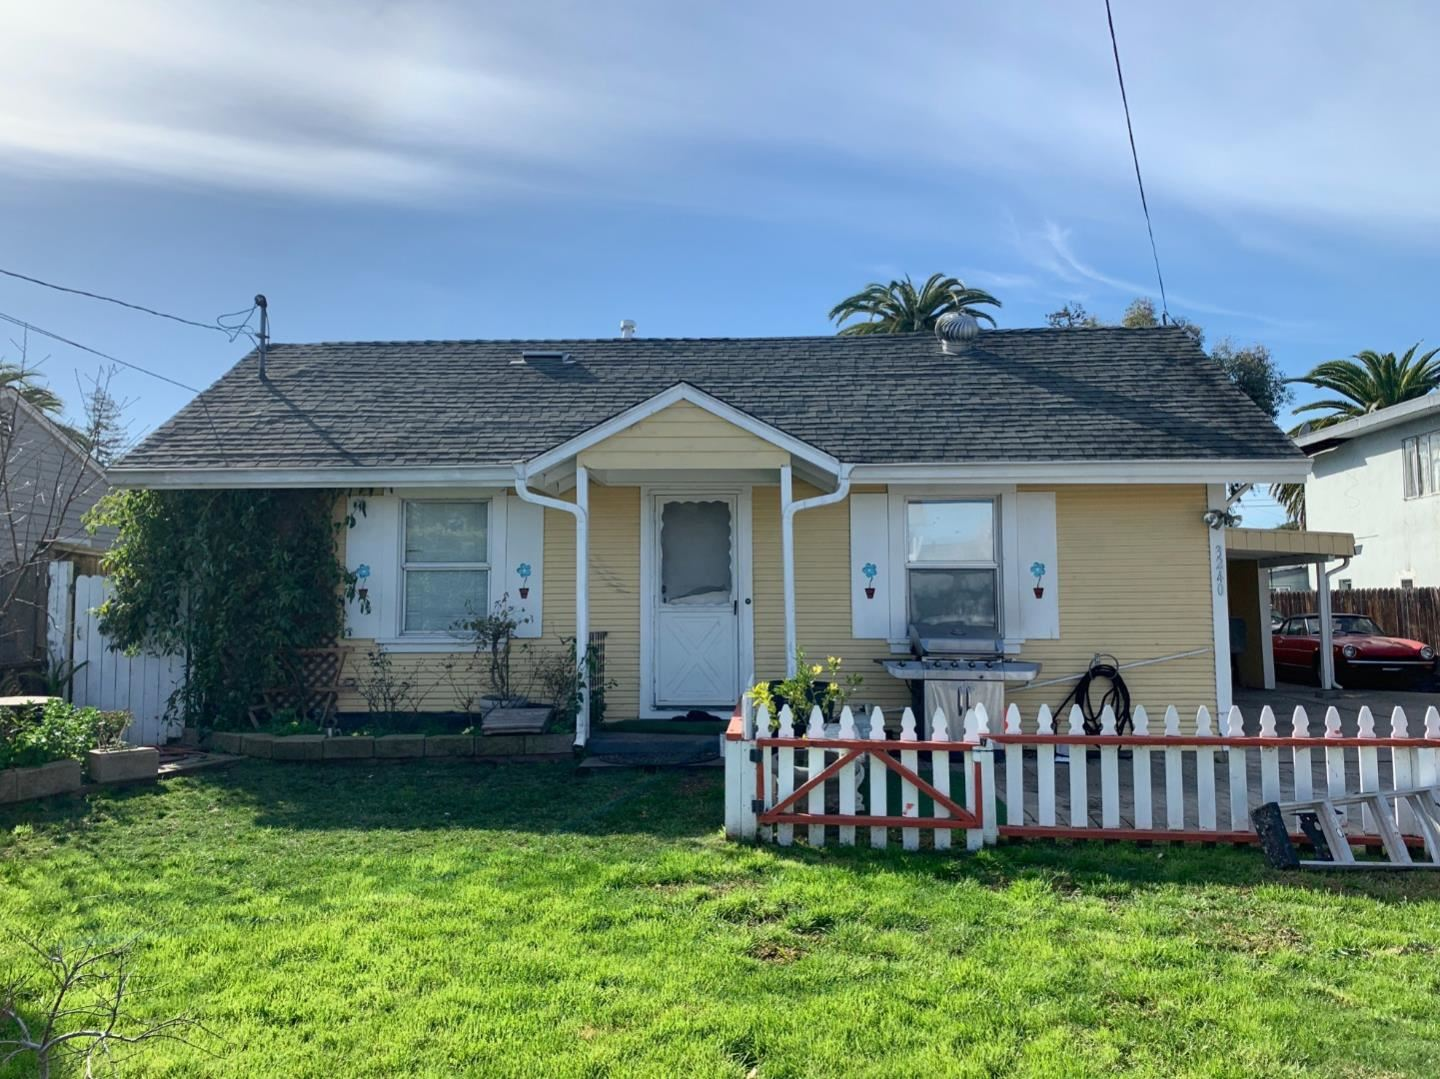 3240 Fair Oaks Avenue, Redwood City, CA 94063 - #: ML81826783